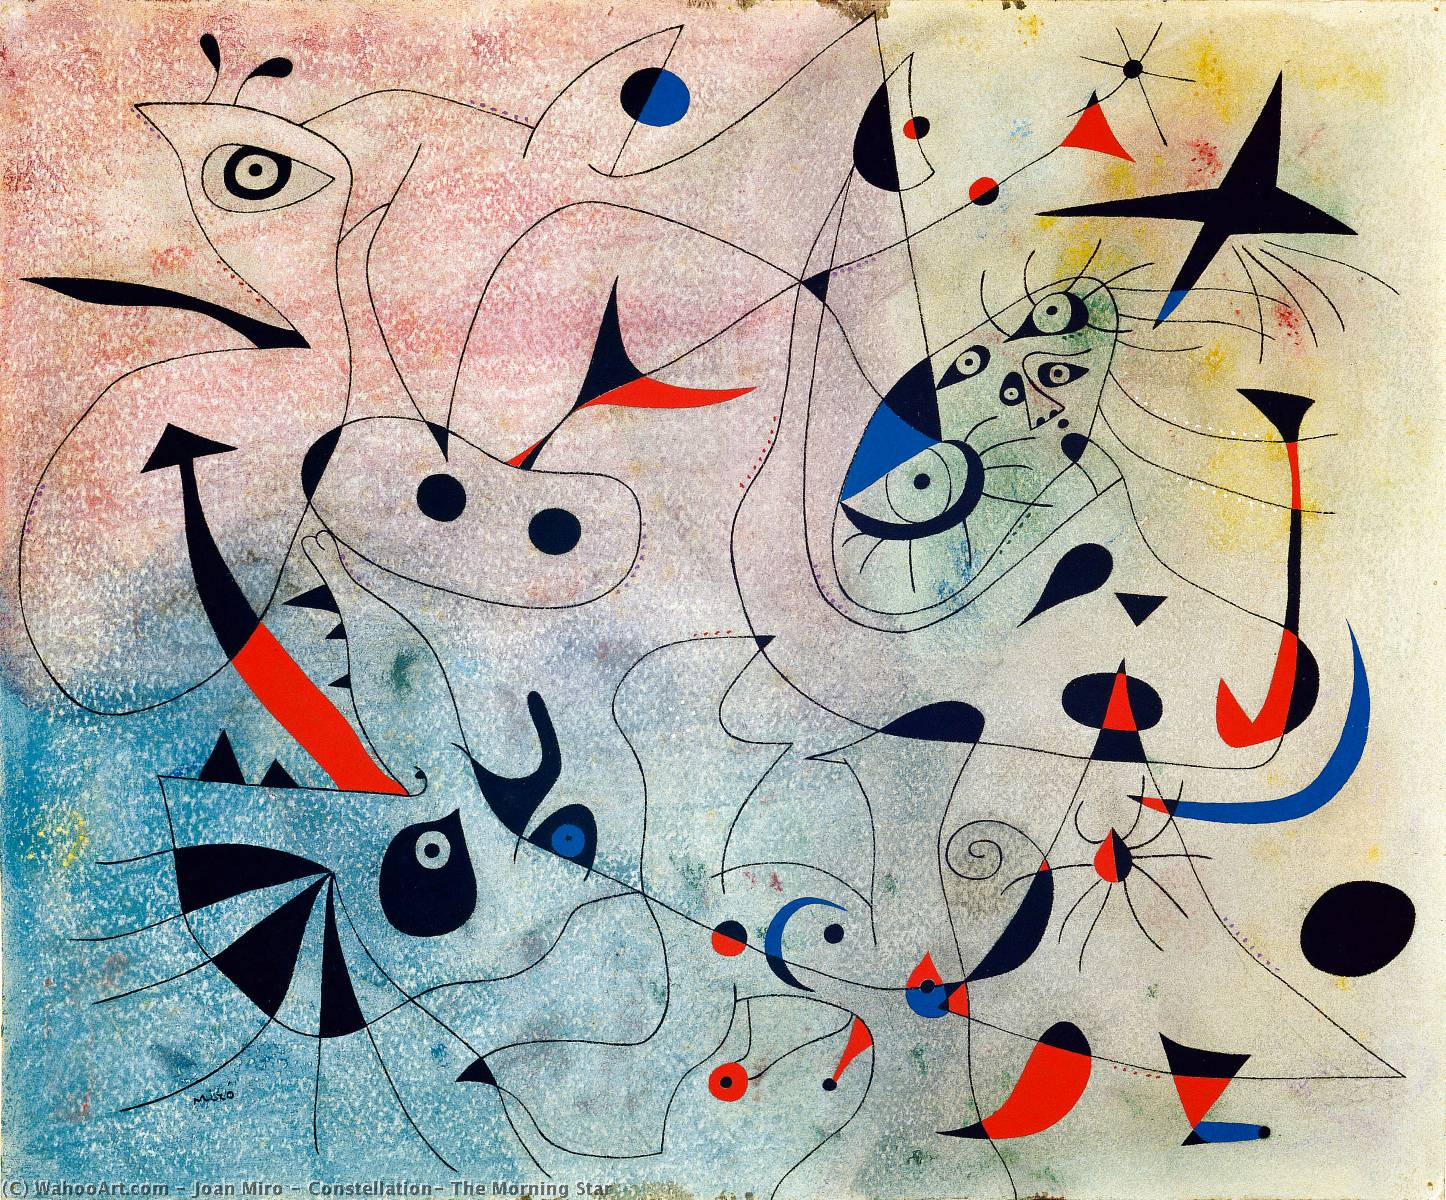 Konstellation : der morgen stern, Gouache von Joan Miro (1893-1983, Spain)